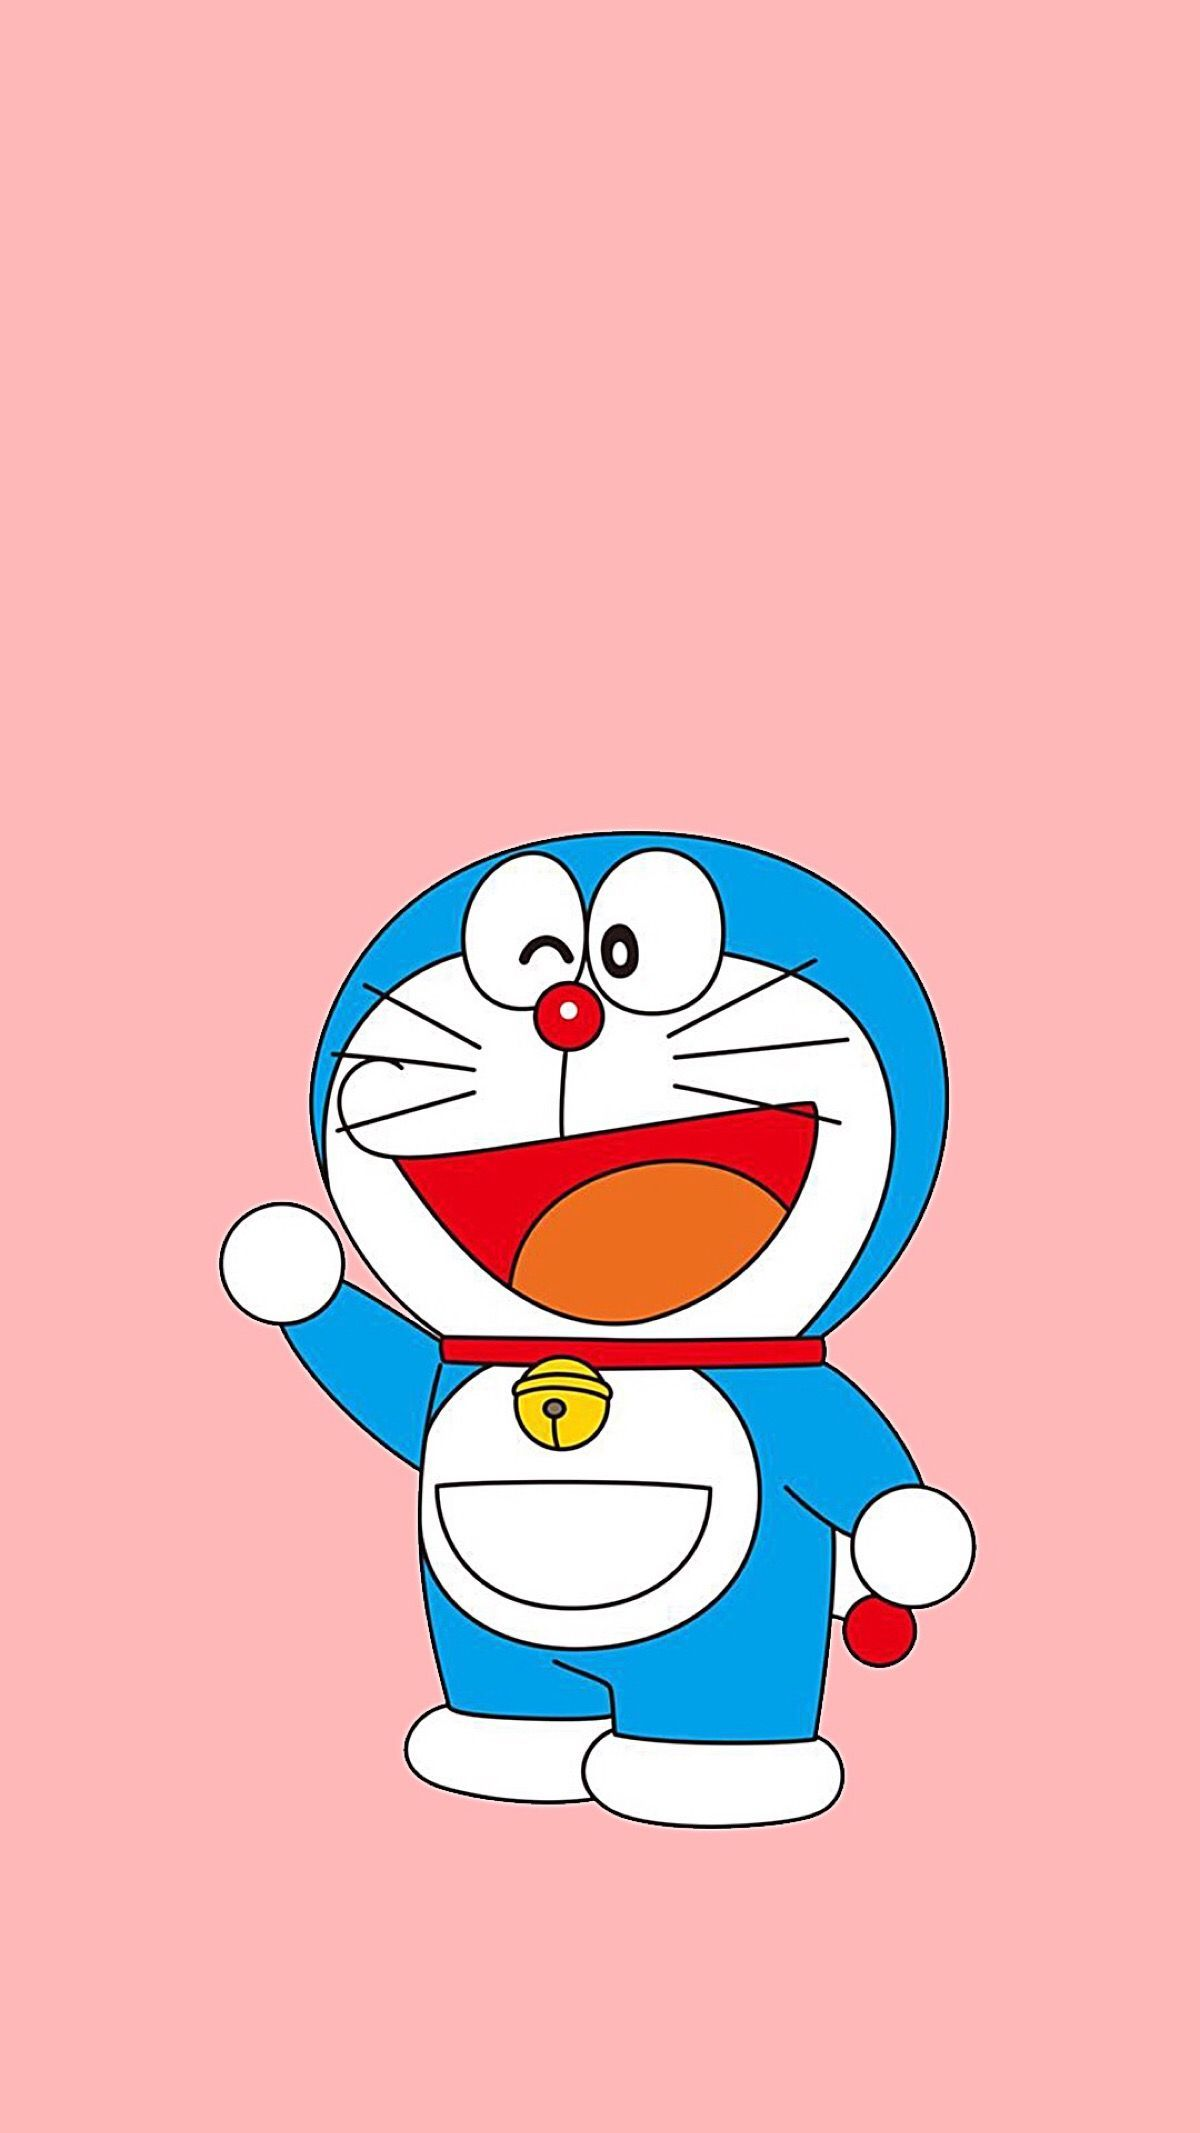 Marvel Wallpaper For Iphone From B Ssl Duitang Com Doraemon Wallpapers Cute Cartoon Wallpapers Doraemon Cartoon